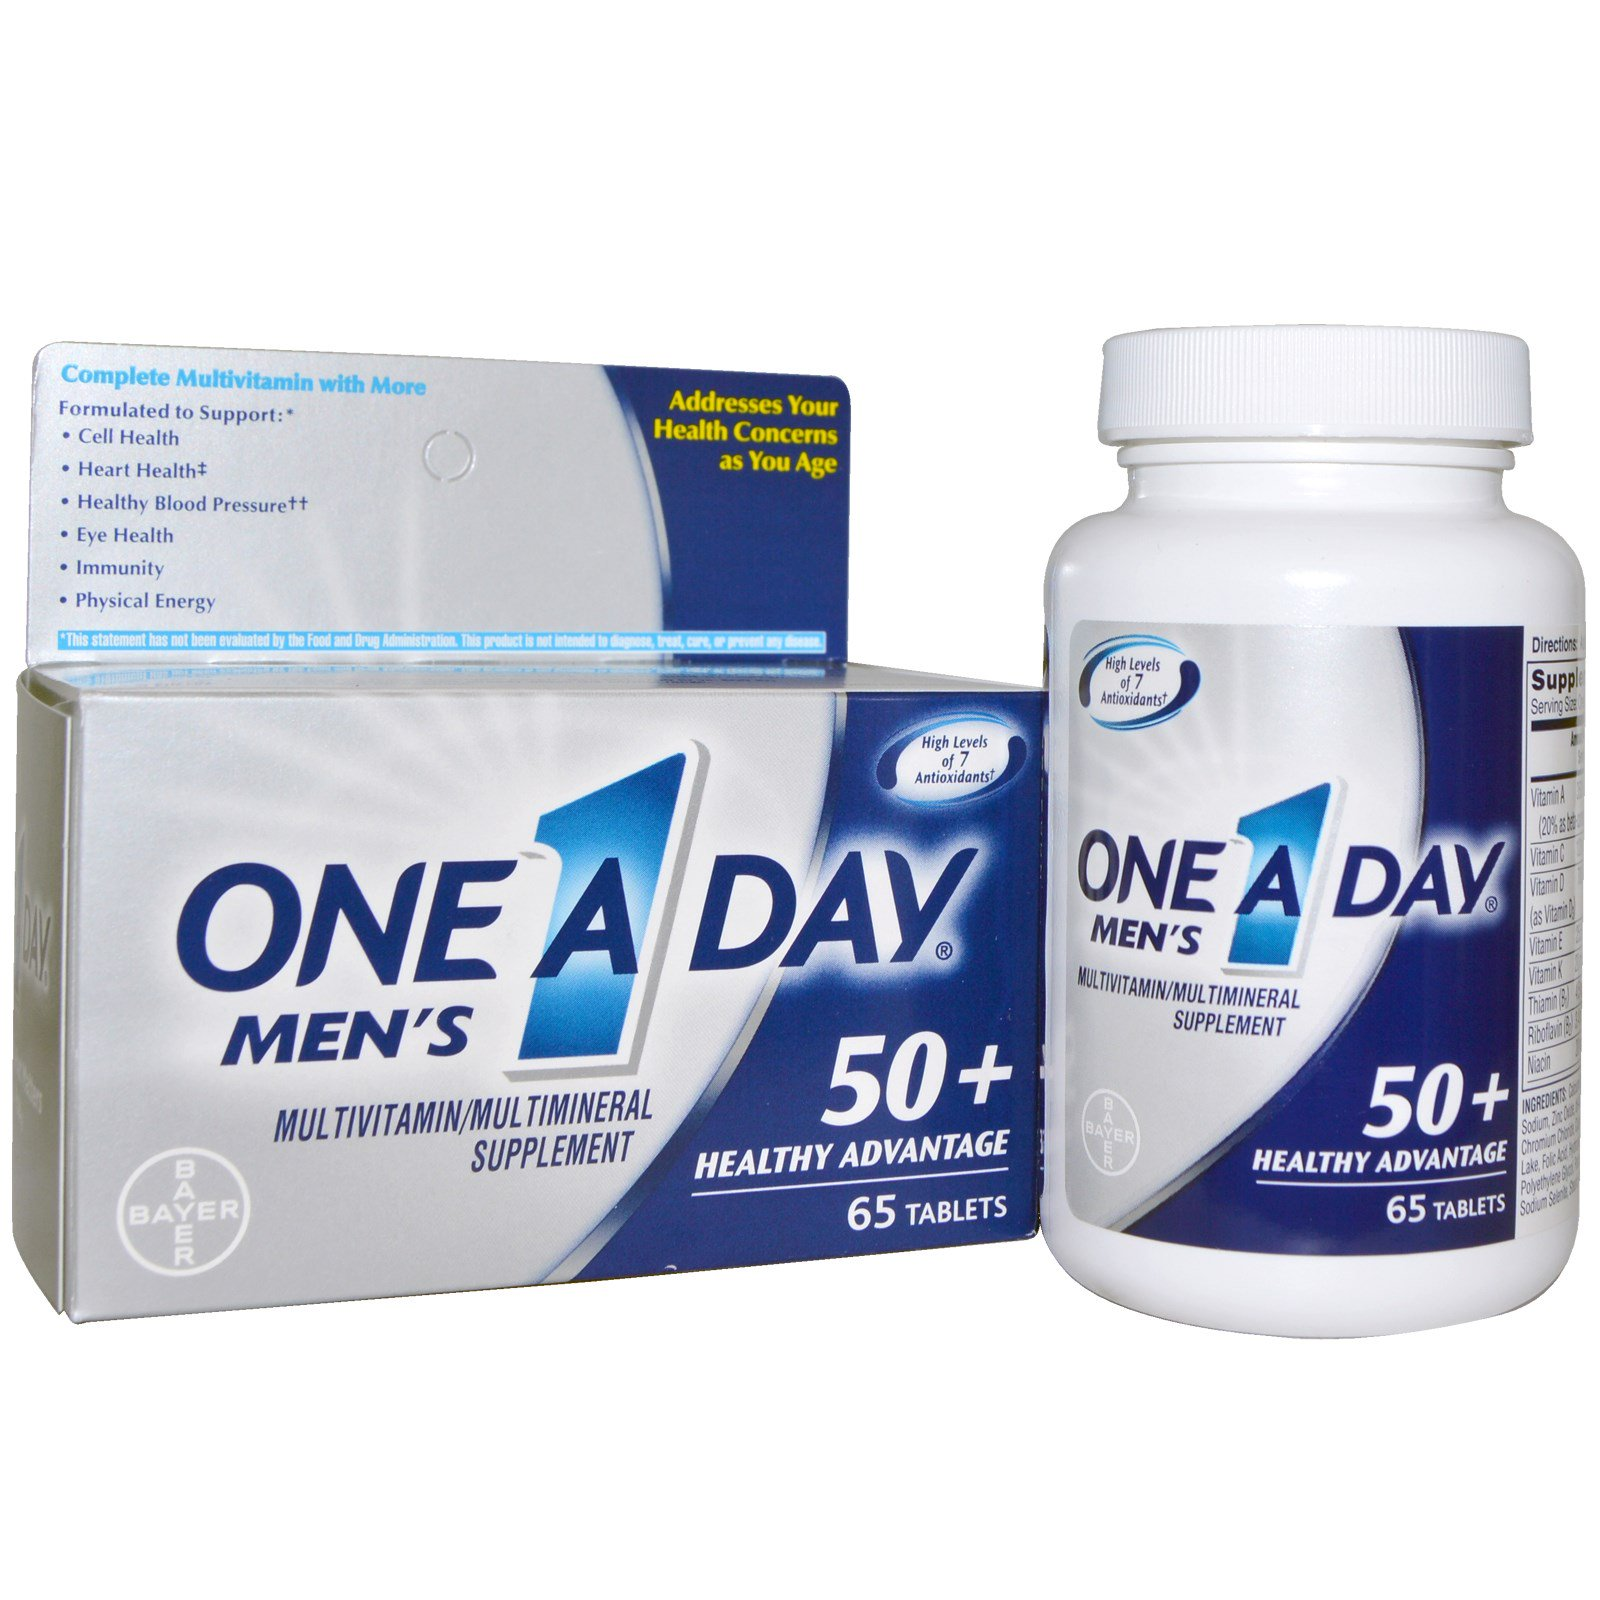 one a night mens unaffected by 50 vitamins